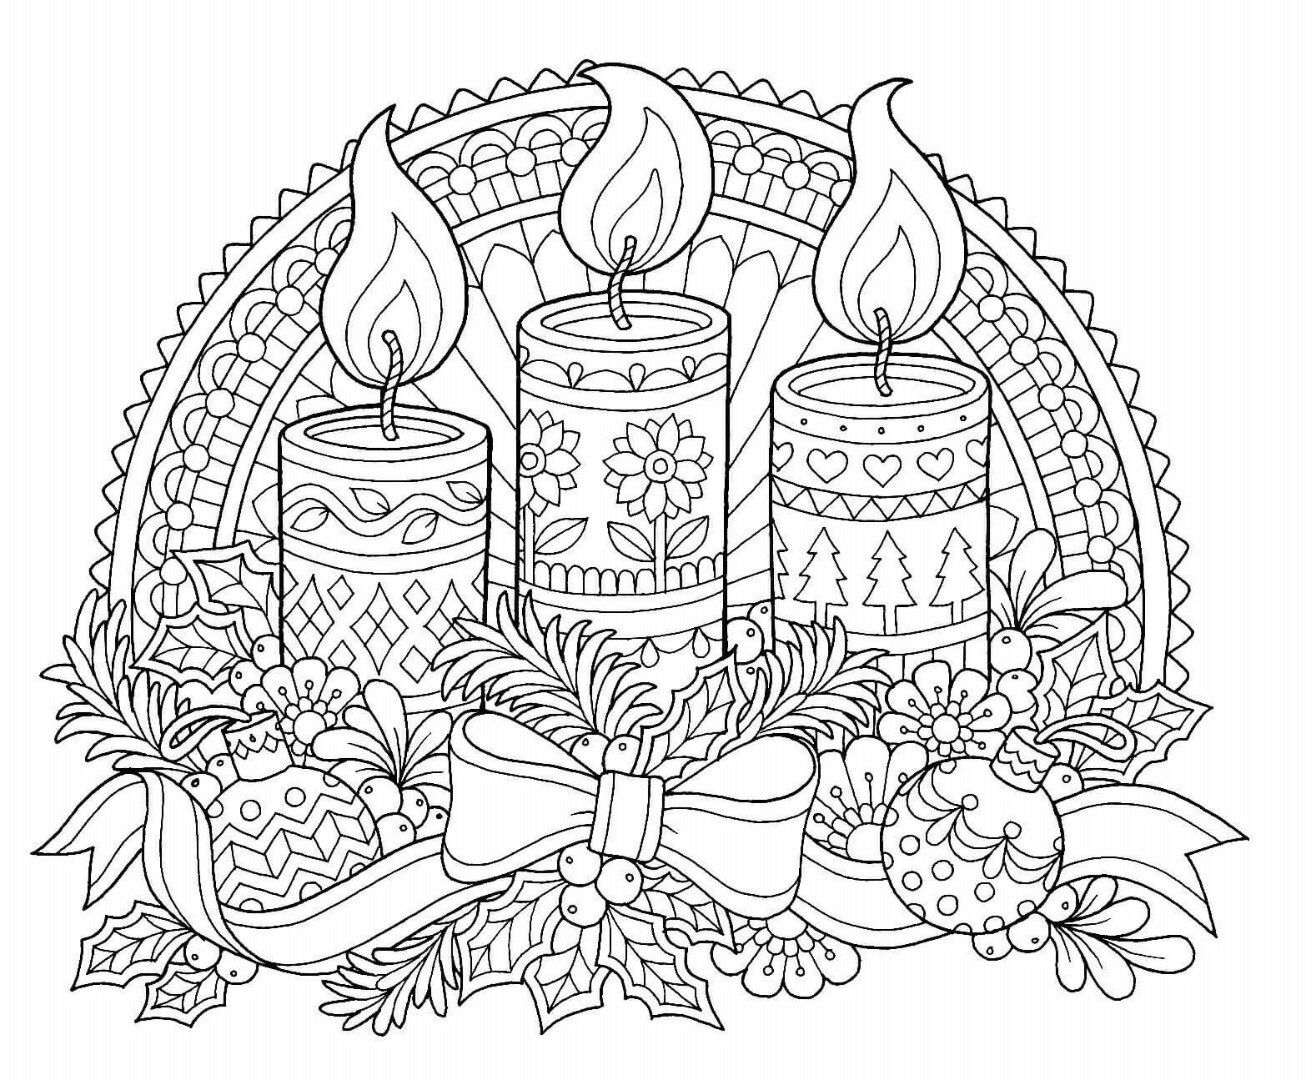 Coloring Pages Holiday Christmas. Christmas Candles Coloring Page Pin by Laura on Colouring pages for Adults  Pinterest Adult